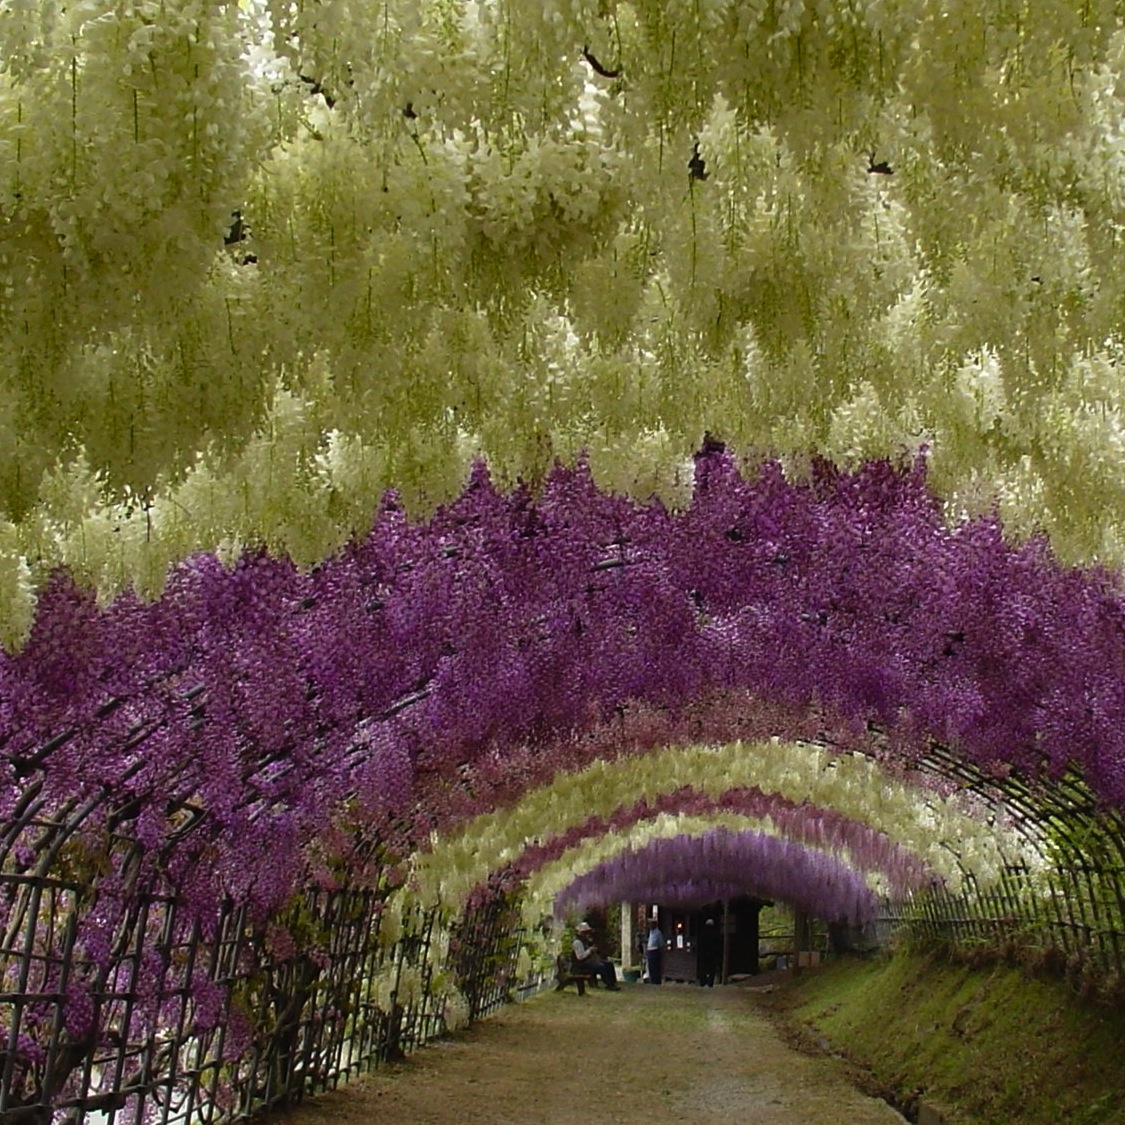 7 viva w Wisteria flower tunnel path in japan